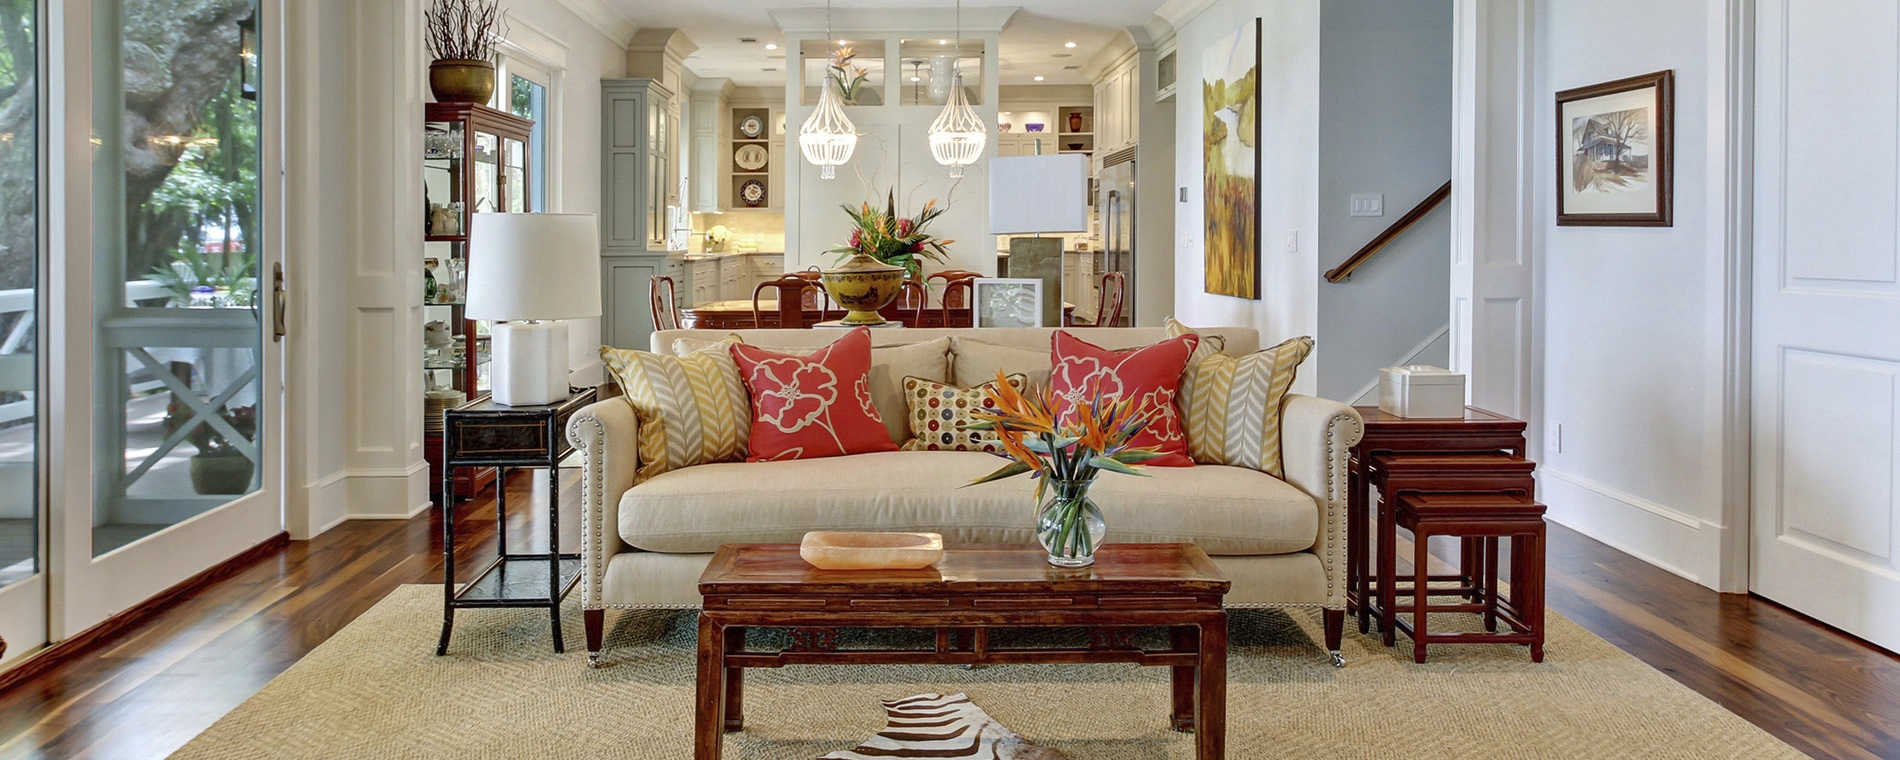 Do I Need An Interior Design Professional For My Home Remodel Alair Homes Greenville